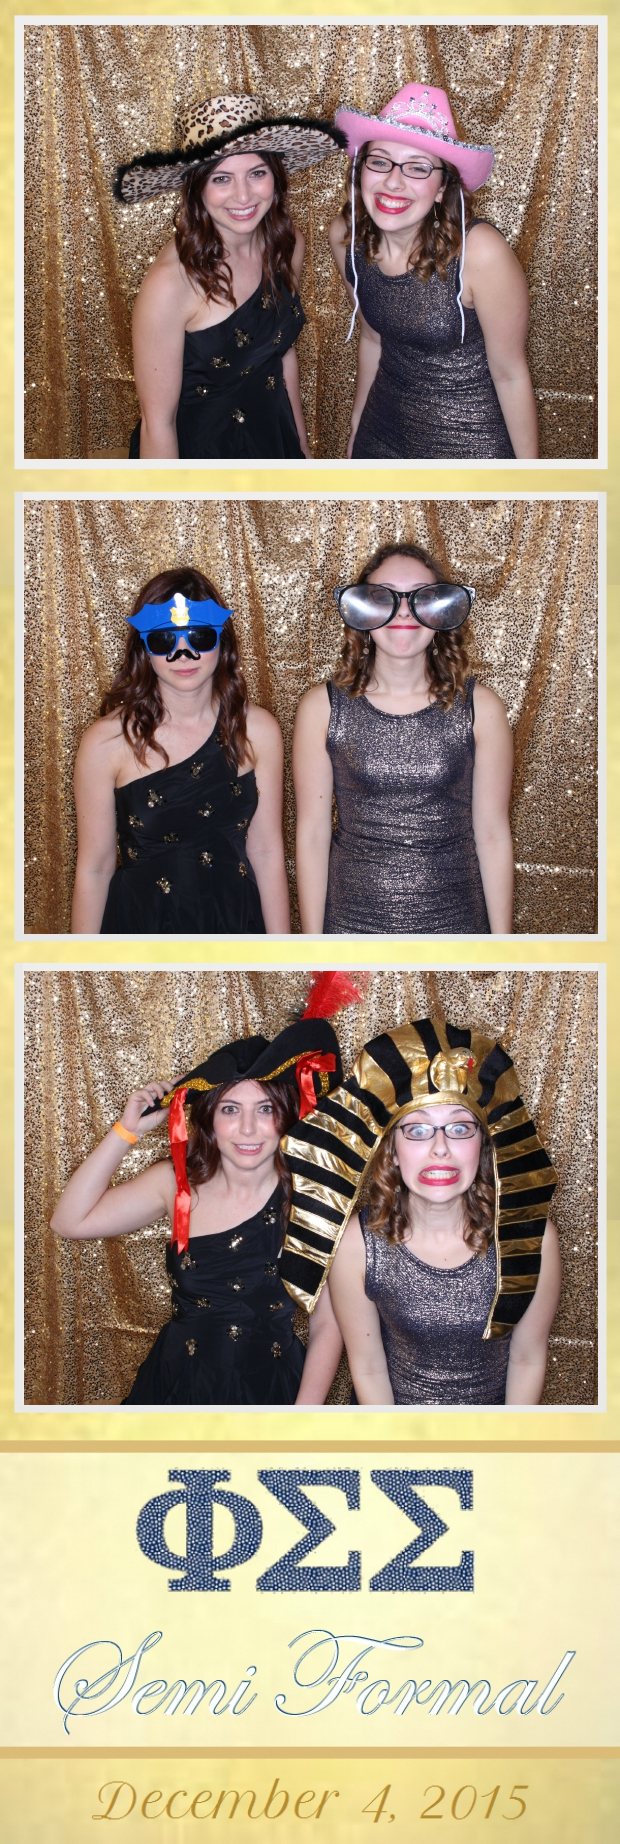 Guest House Events Photo Booth Phi Sigma Sigma Semi Formal (18).jpg